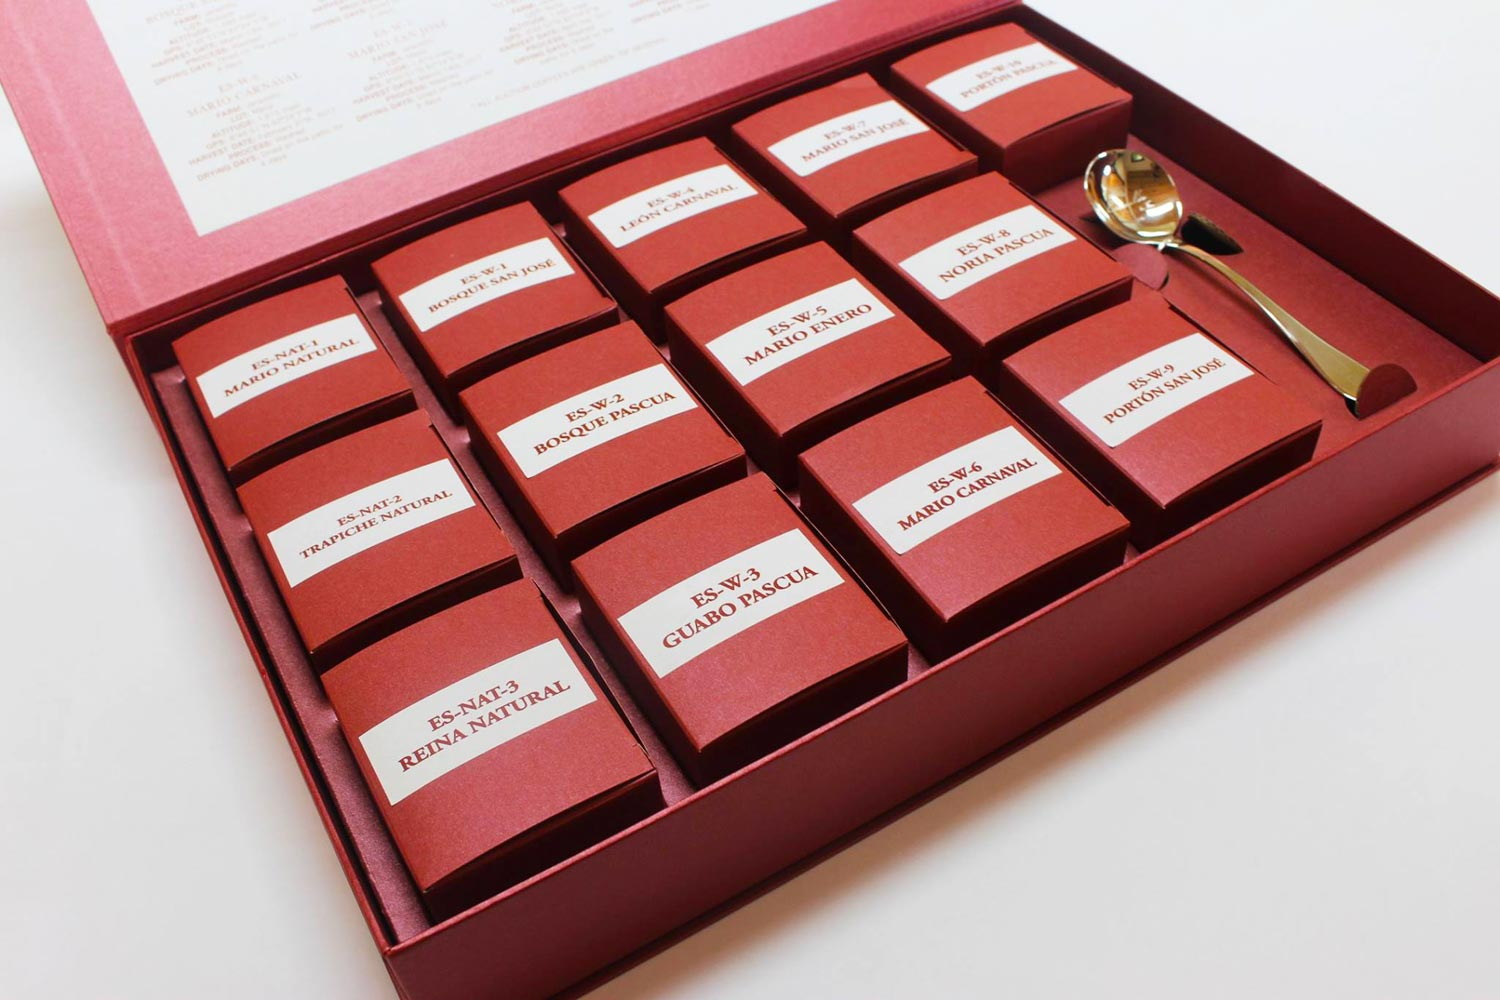 Esmeralda Geisha Canas Verdes Natural – The Most Expensive Coffee in the World 7